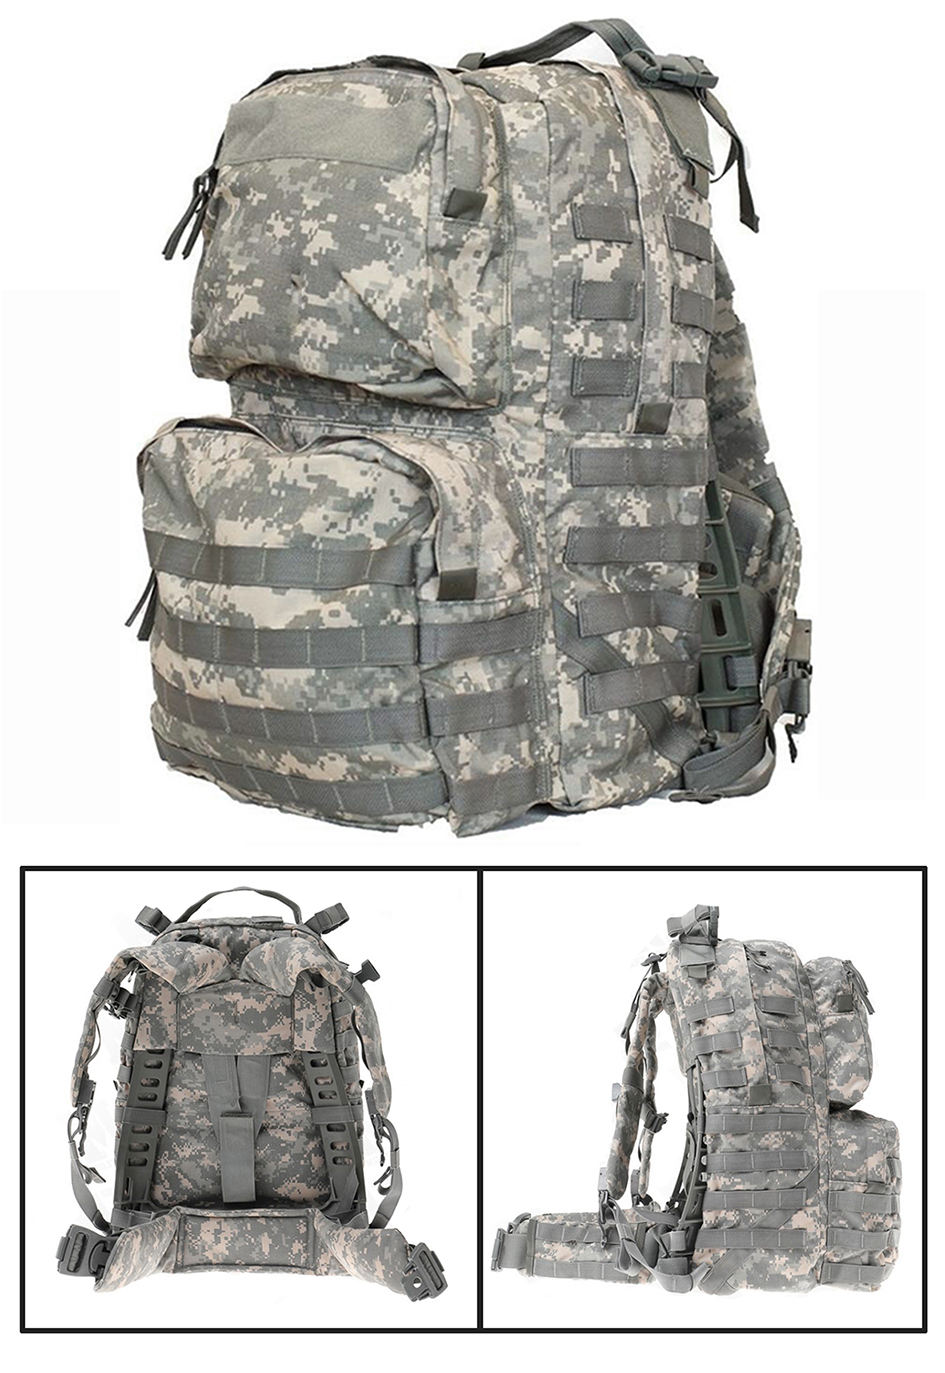 1/16 U.S. Military assault backpack(图3)